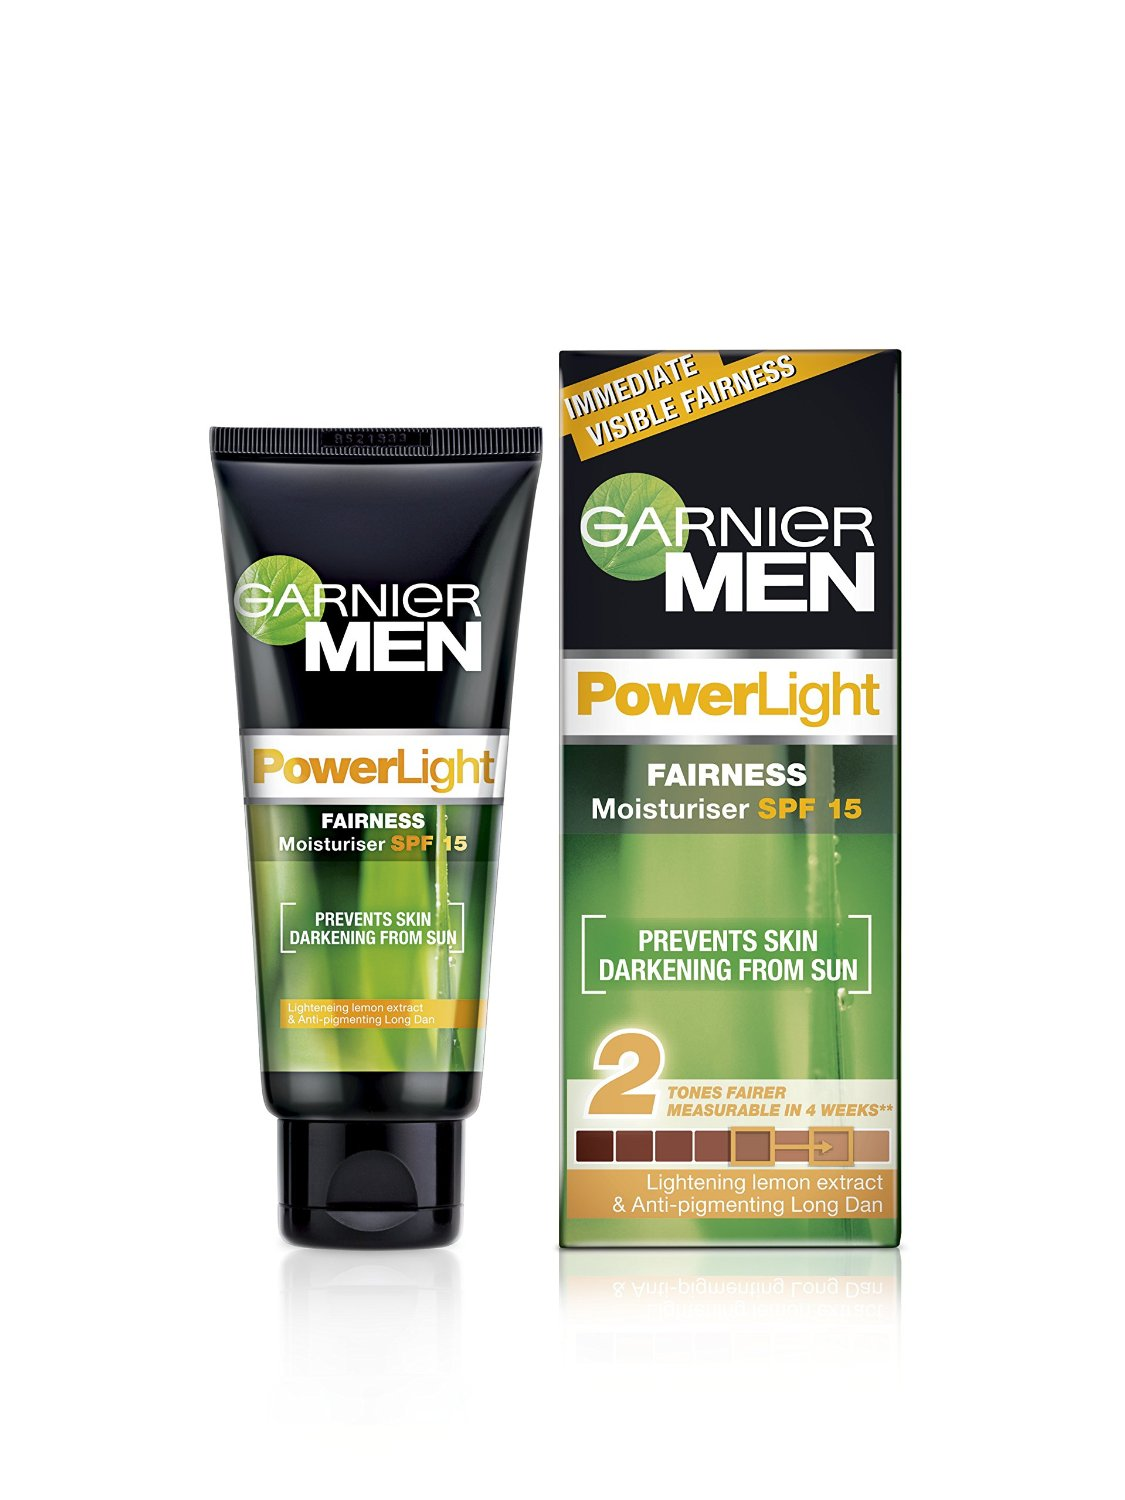 GARNIER MEN POWER LIGHT FAIRNESS MOISTURISER ( SPF 15 ) - 20 GM